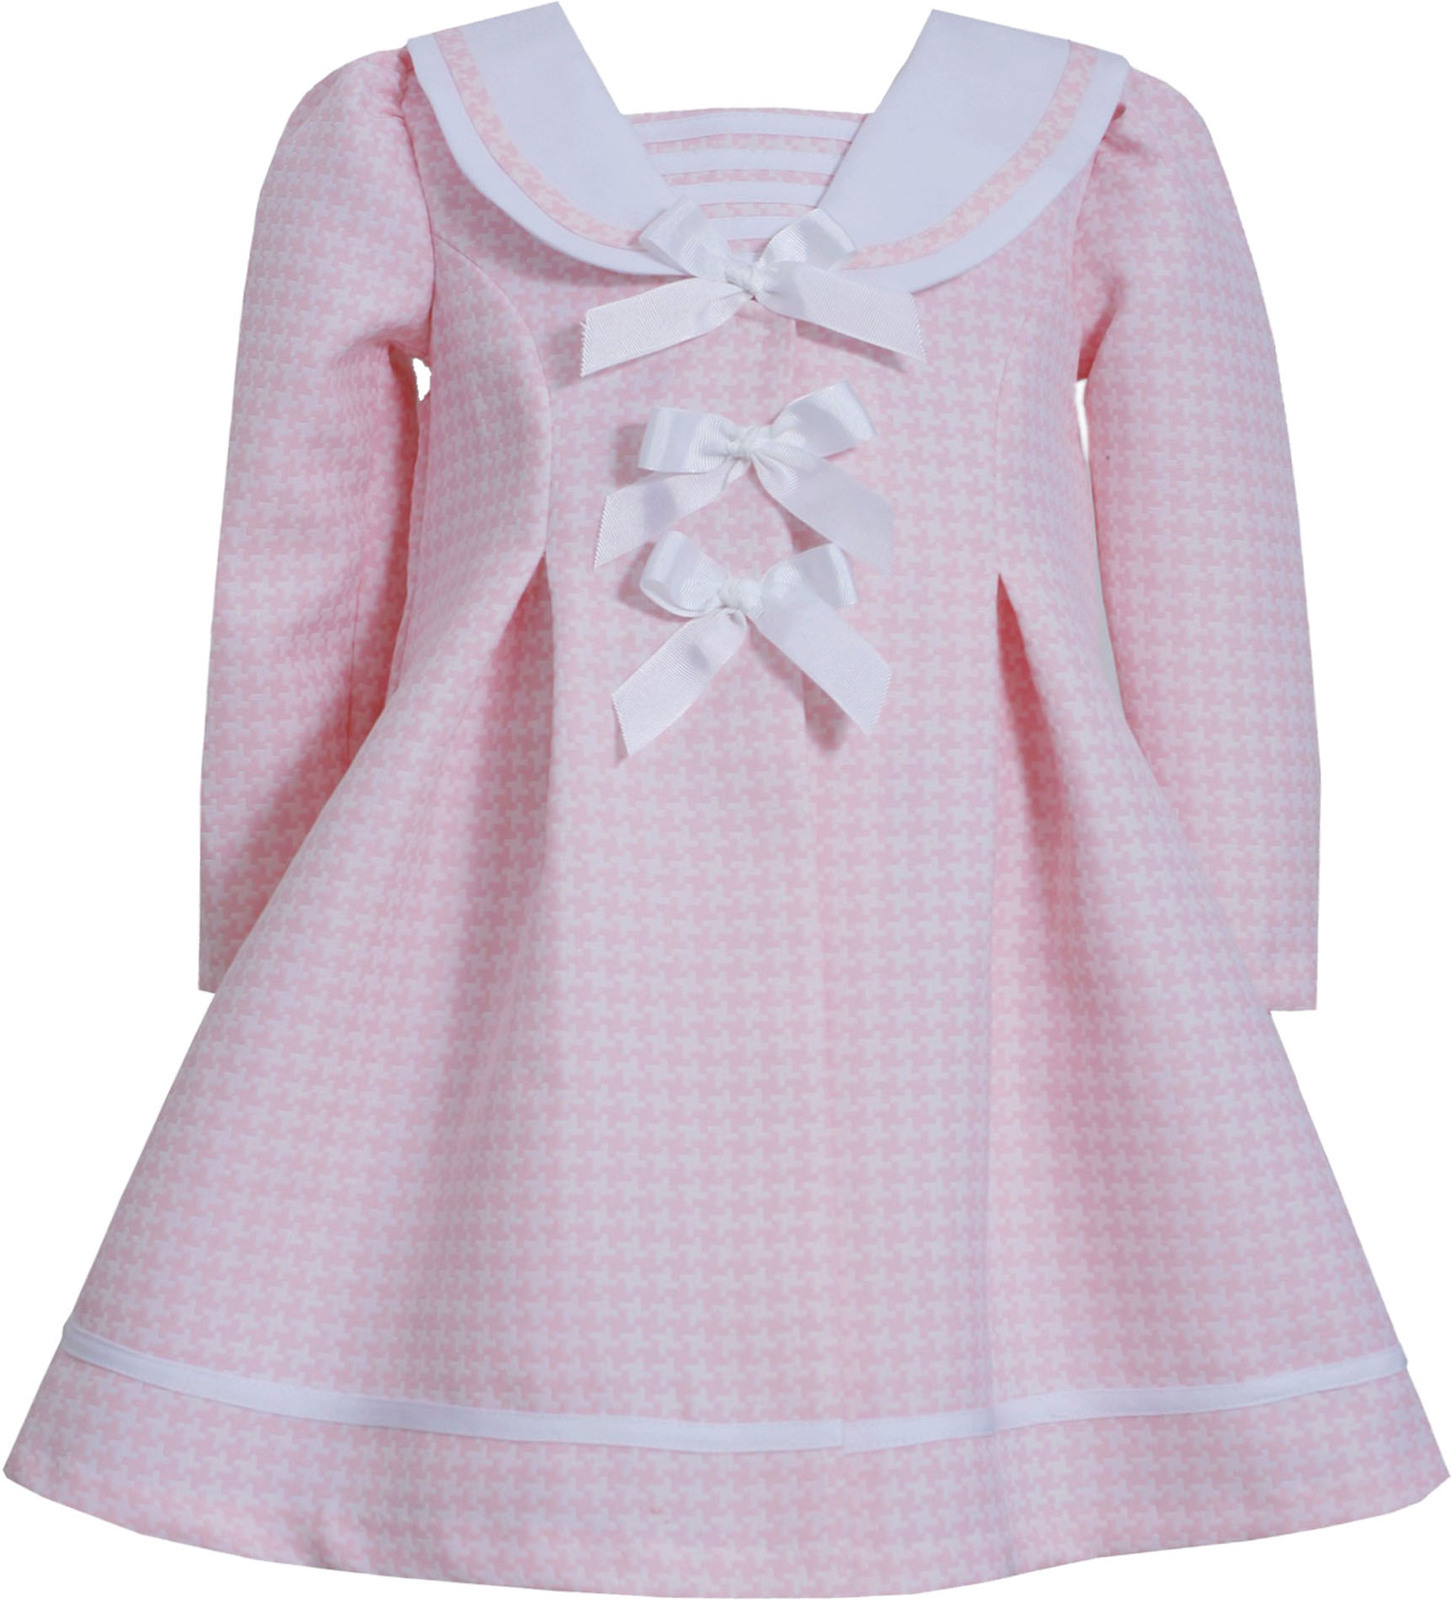 Bonnie Jean Baby Girl 3M-9M Pink Triple Bow Jacquard Houndstooth Dress/Coat Set